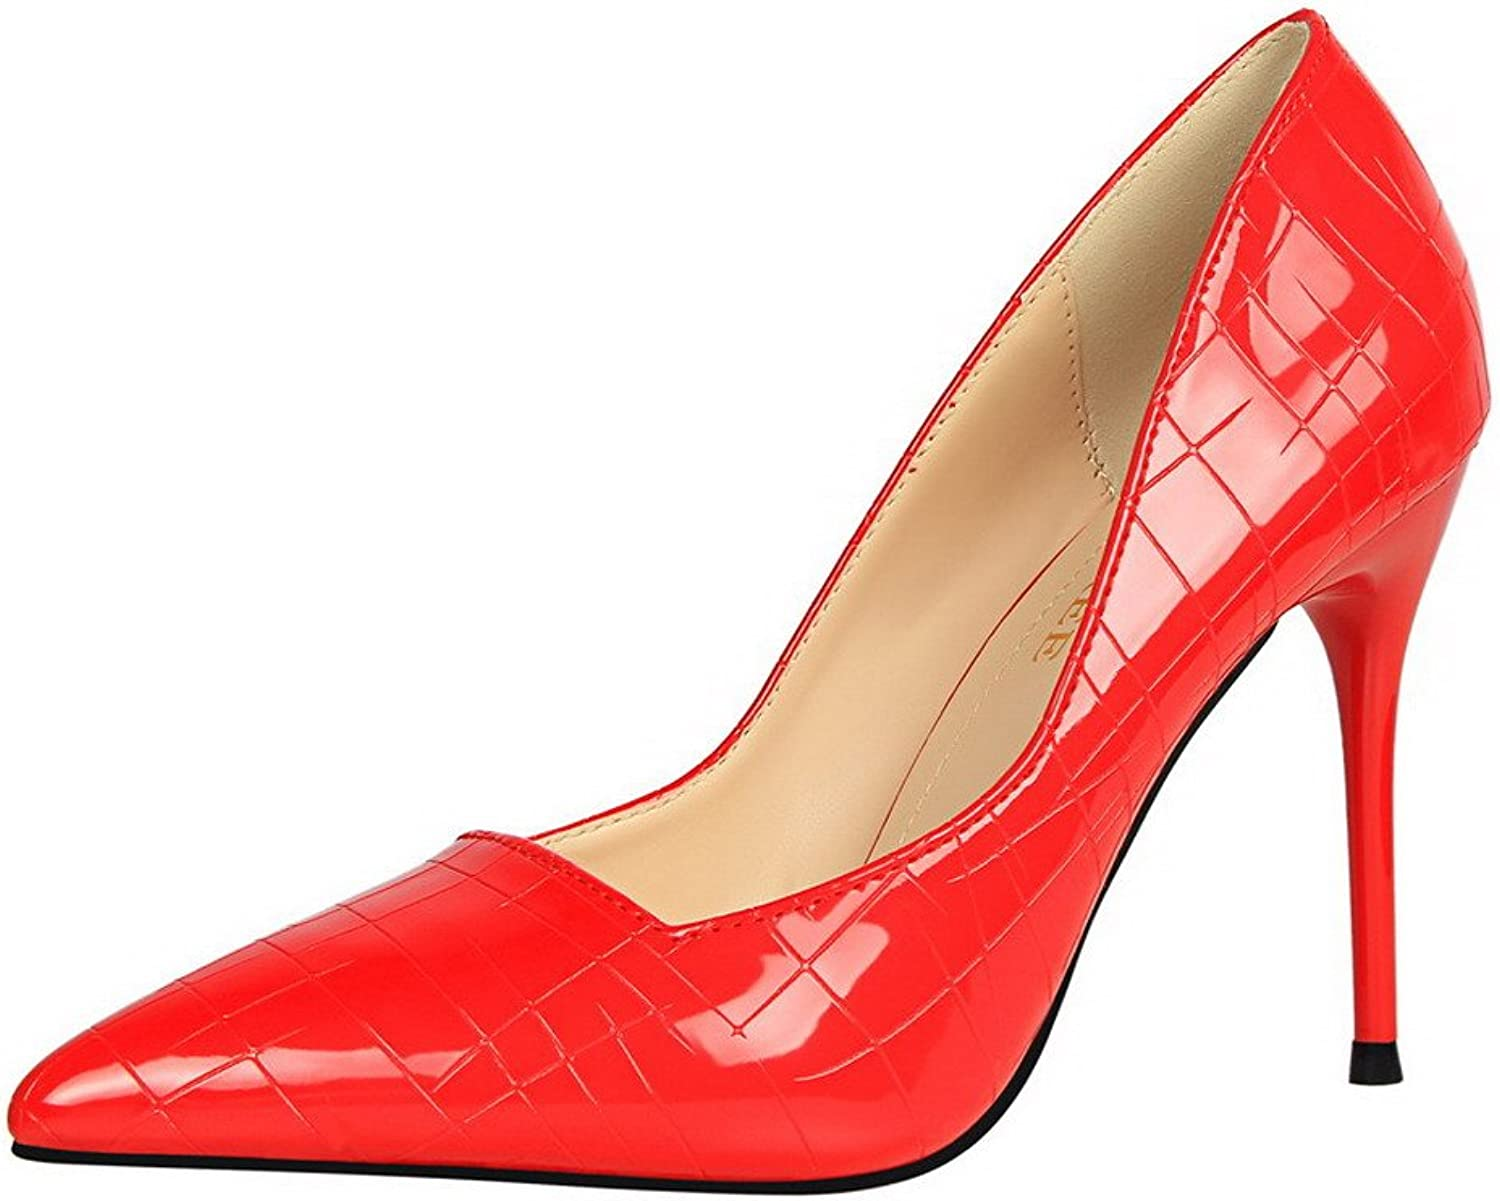 WeiPoot Women's Solid PU High-Heels Pull-On Pointed-Toe Pumps-shoes